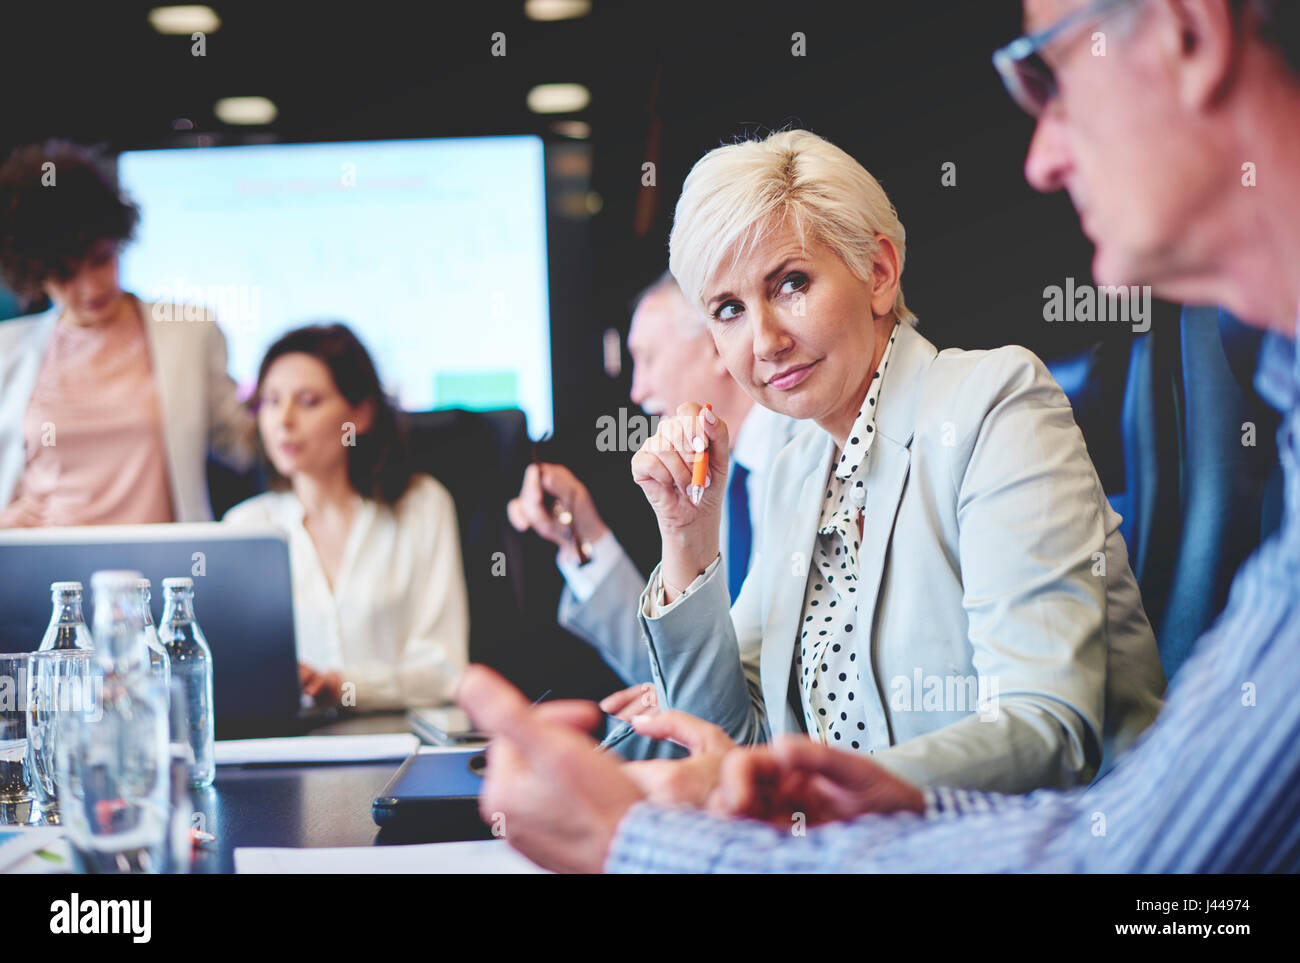 Pensive woman listening to colleagues opinion - Stock Image